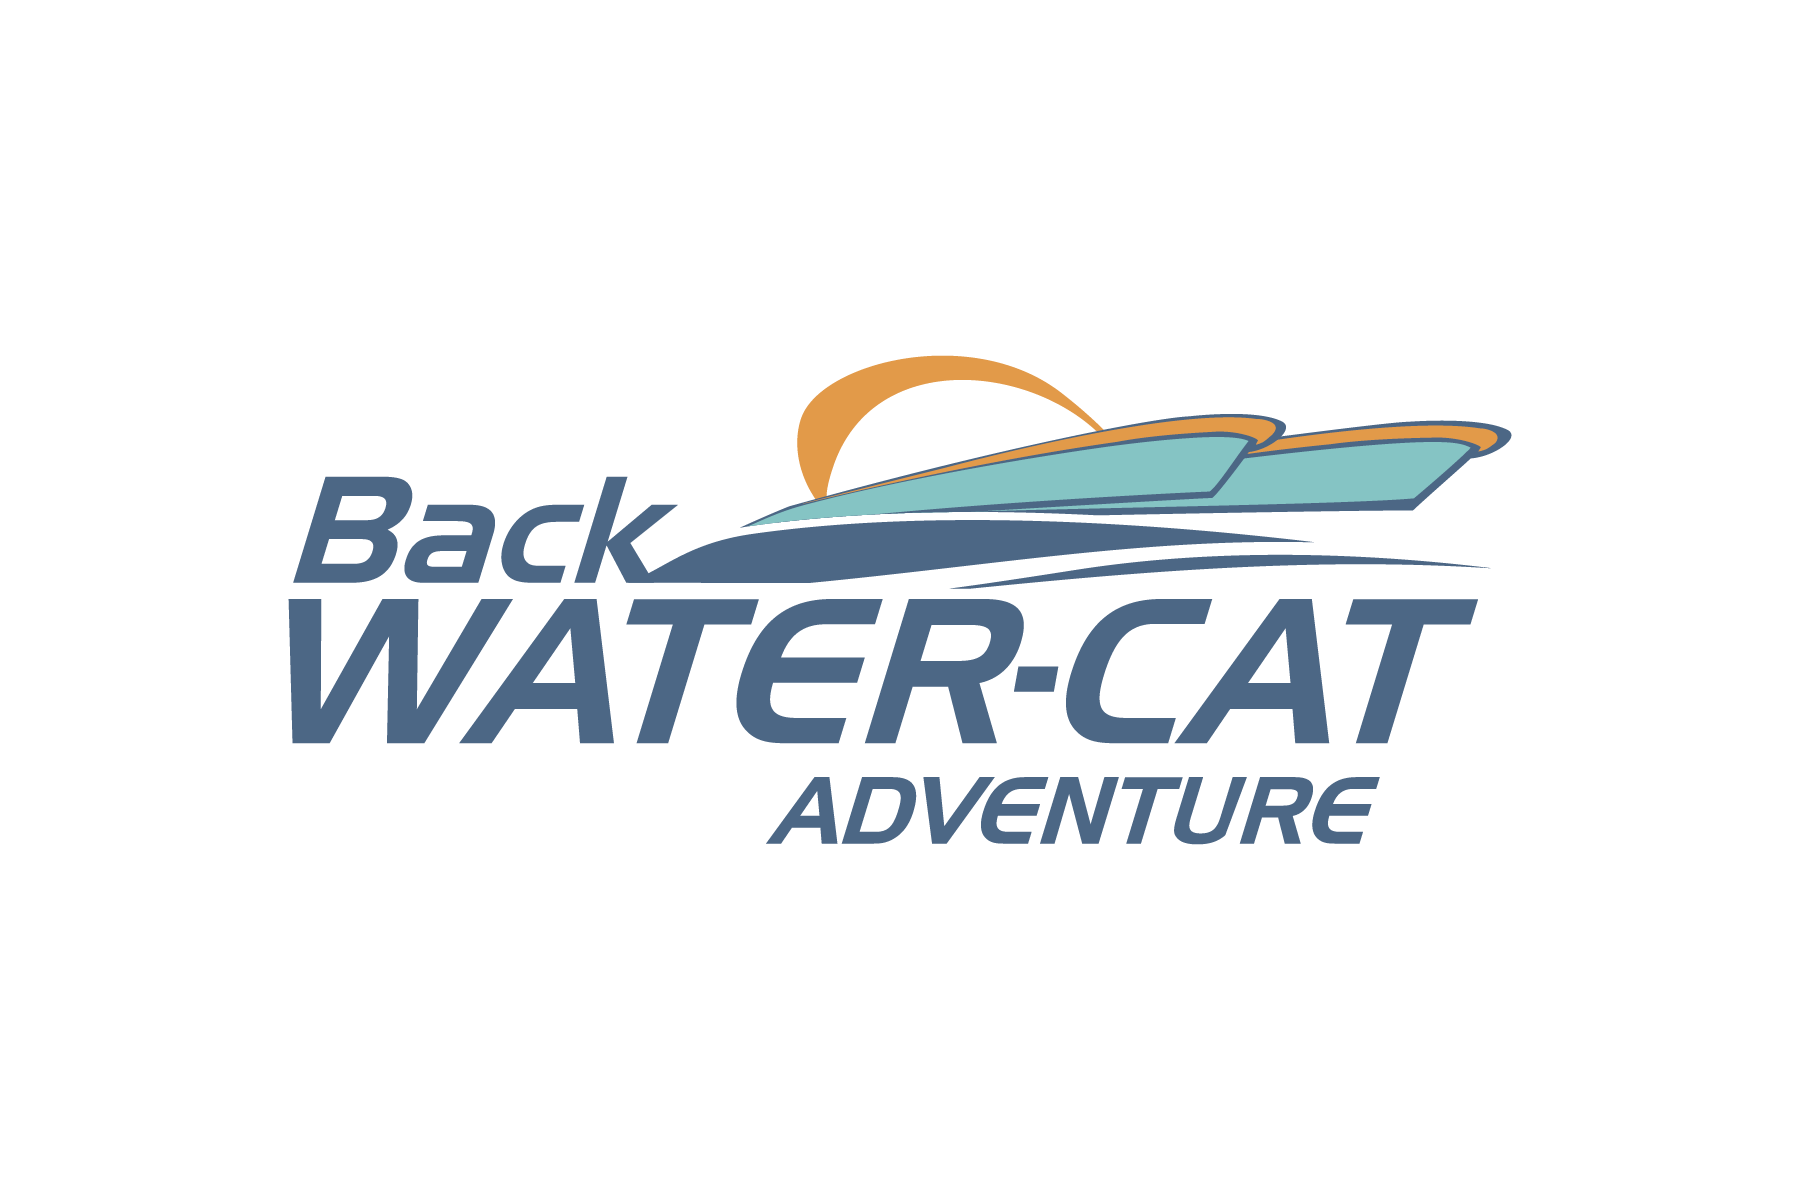 backwater cat adventure hilton head boat tours amelia island boat tours